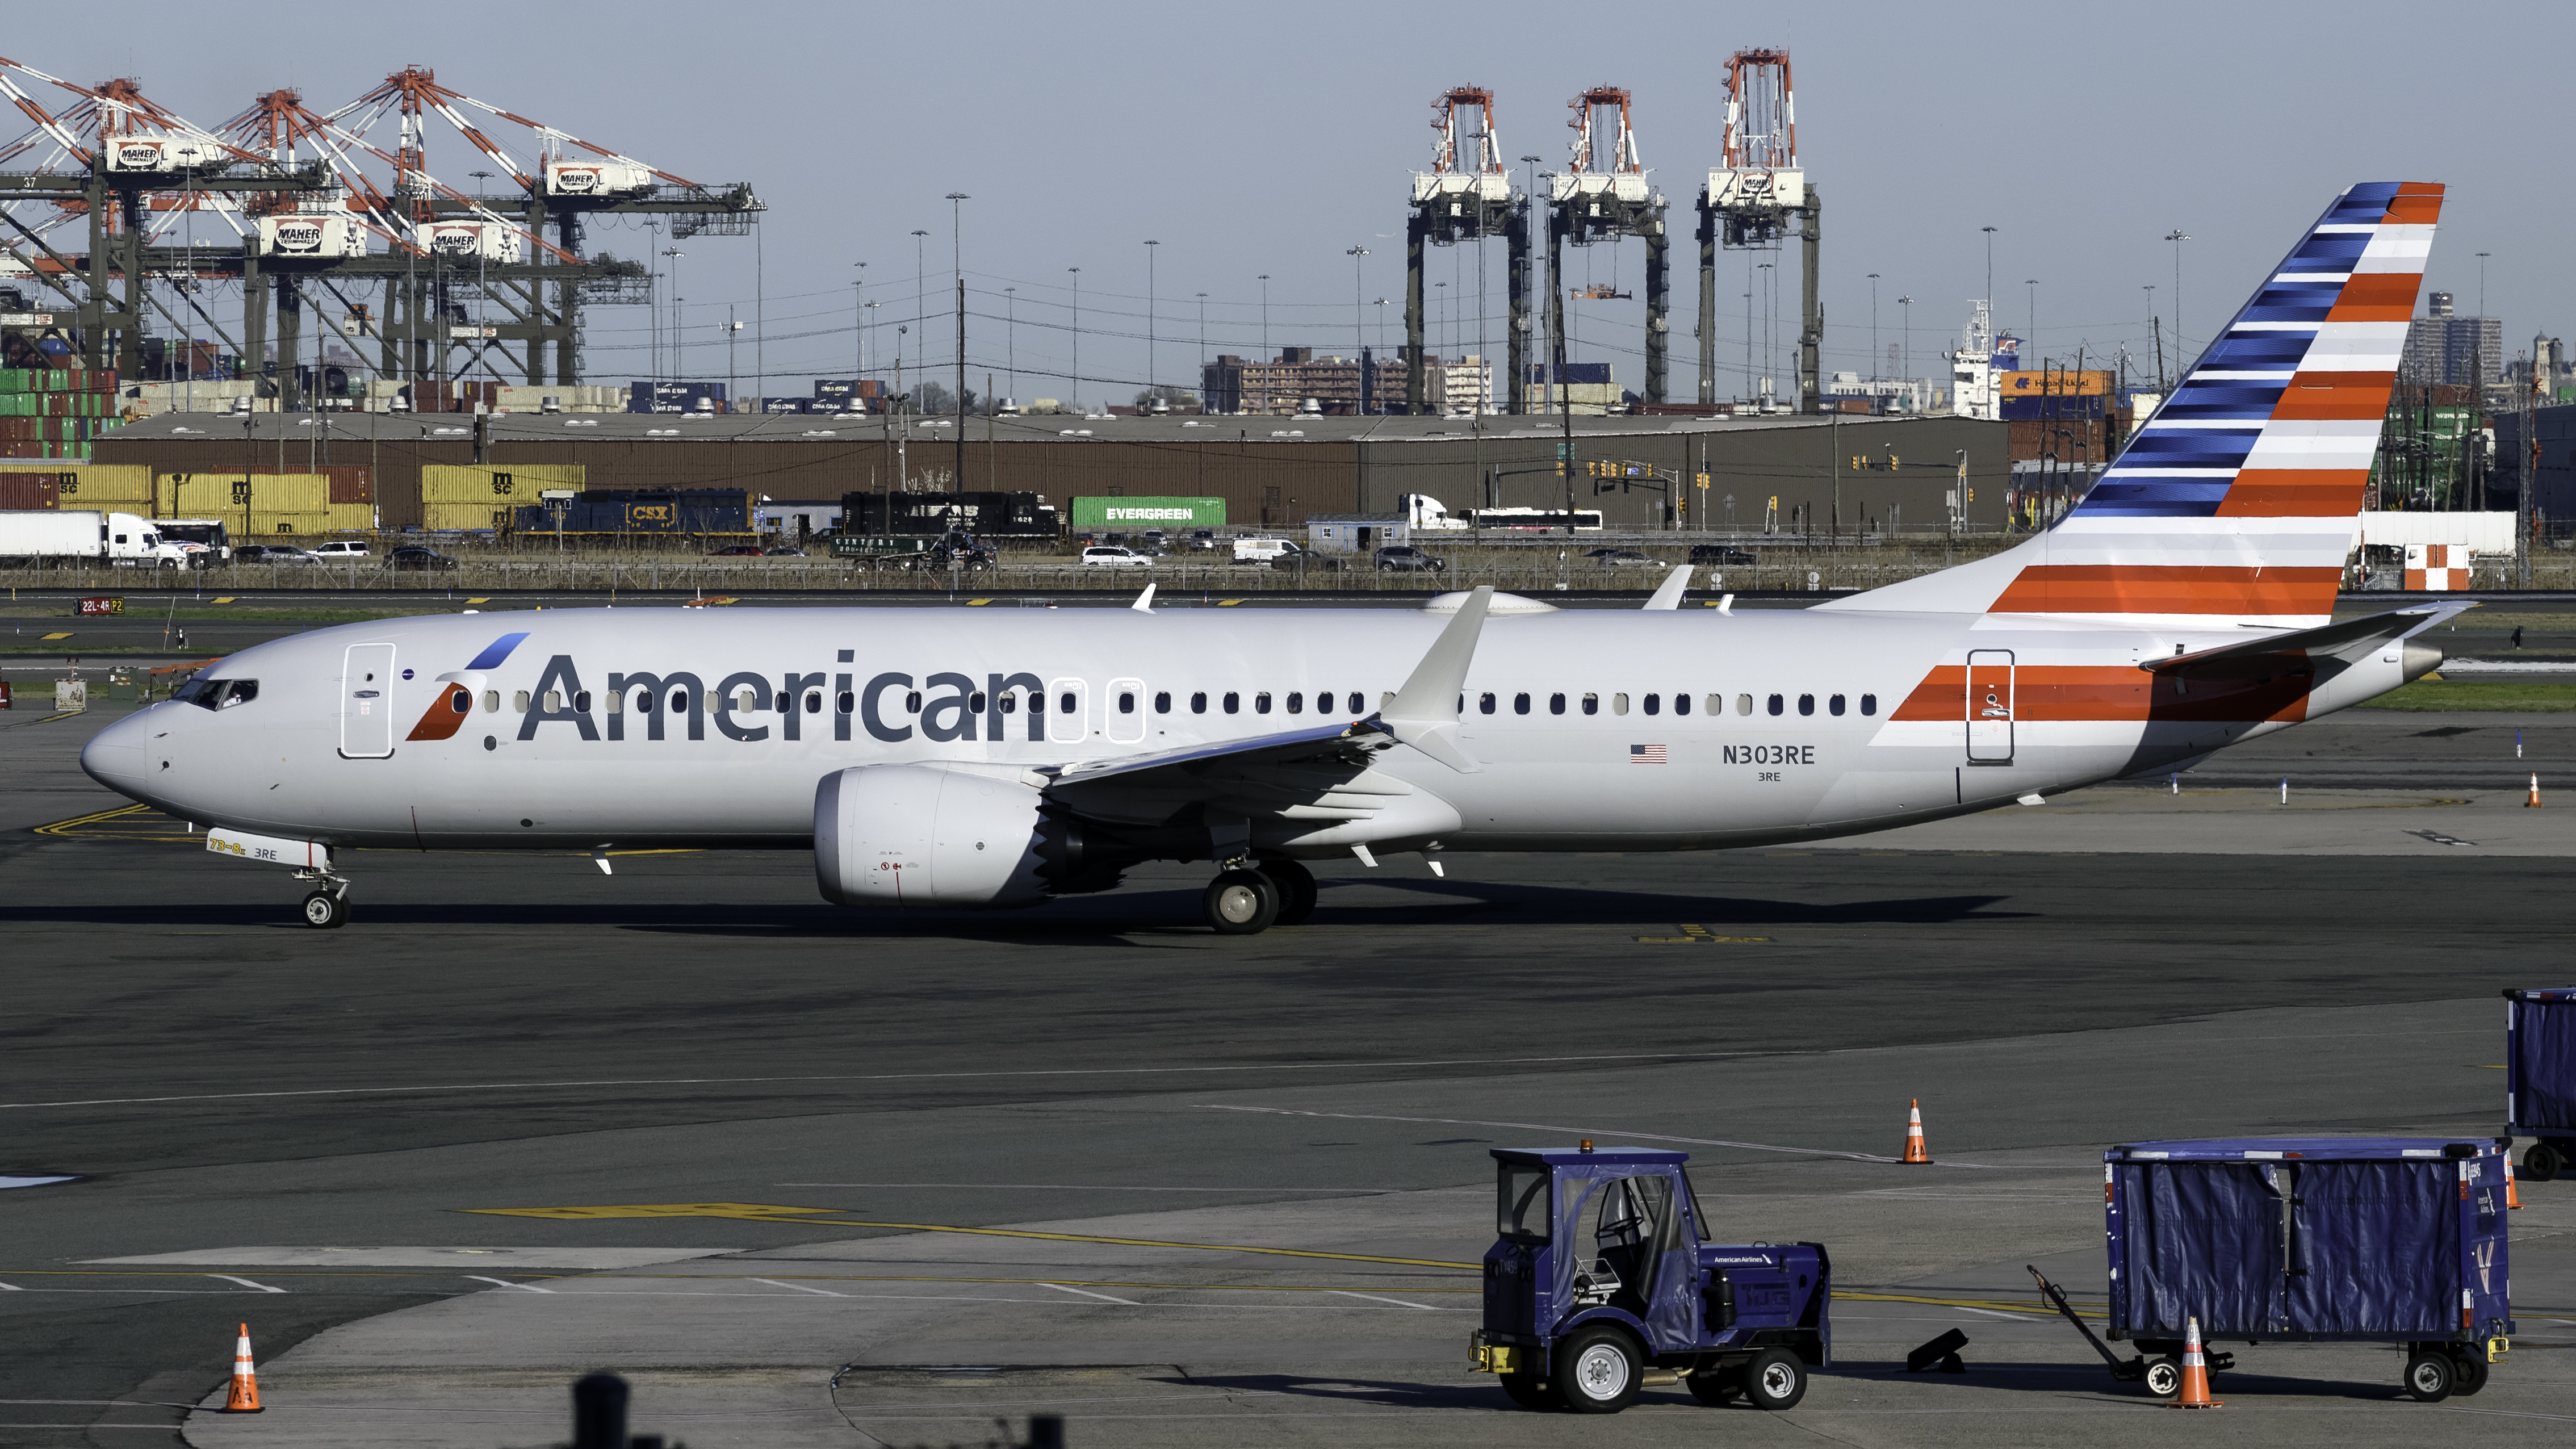 Photo of N303RE - American Airlines Boeing 737 MAX 8 at EWR